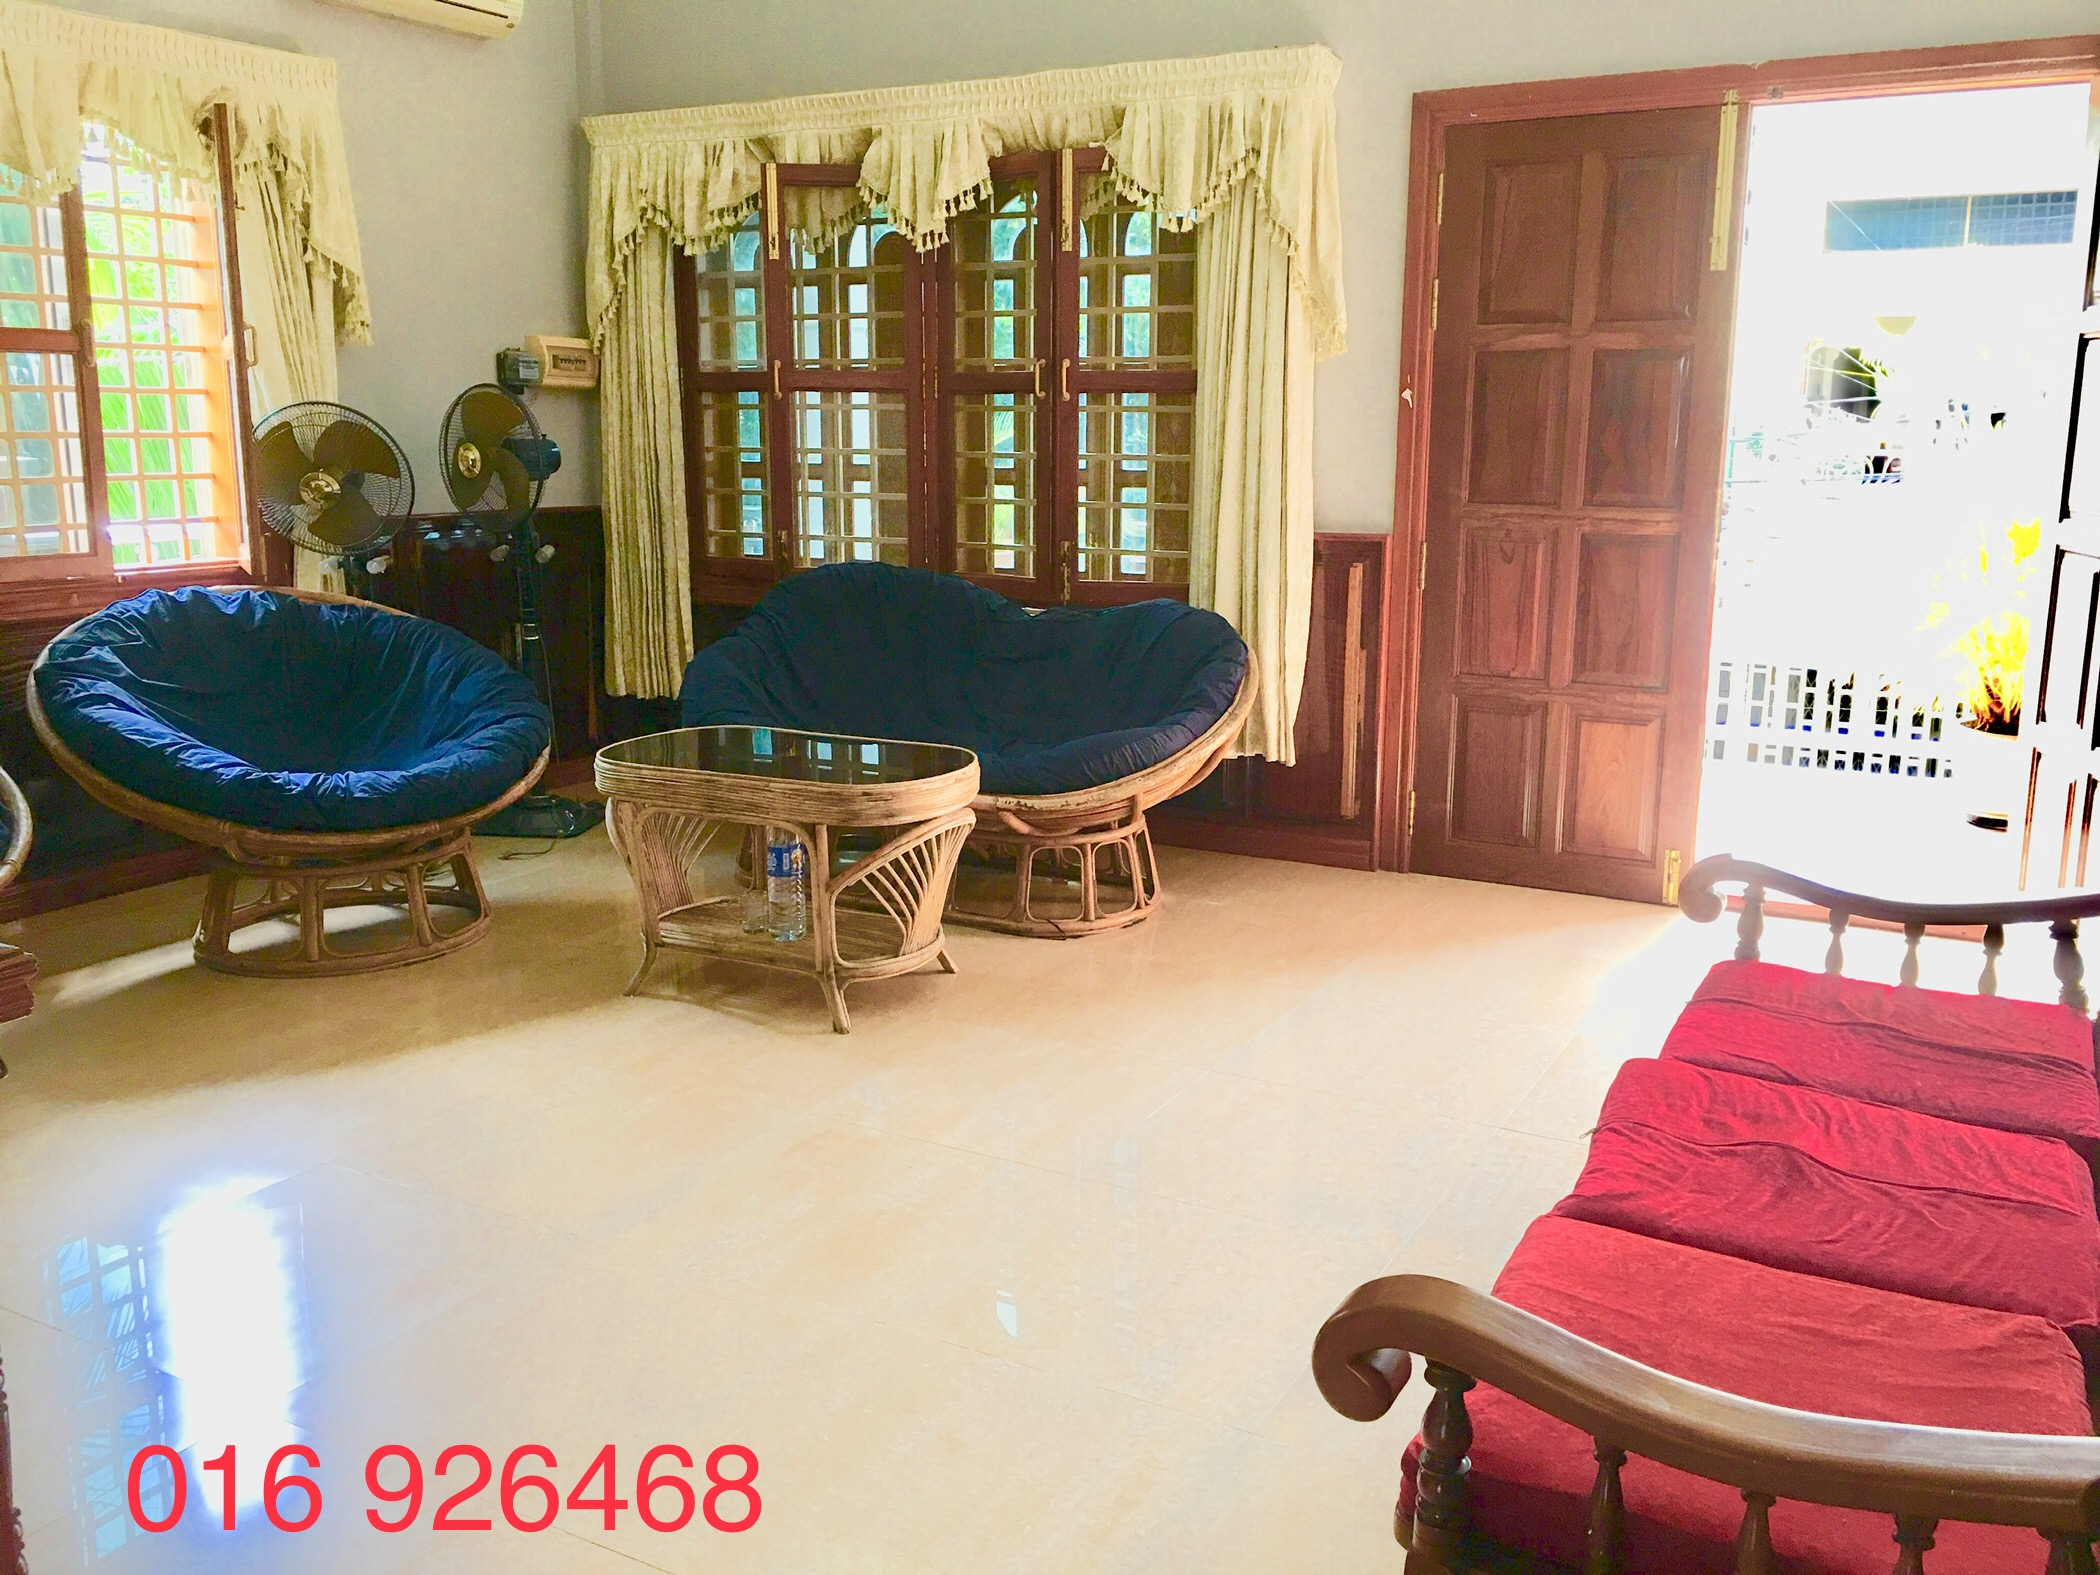 2 Bedrooms $450 Nice Furnished Apartment For Rent In Phnom Penh,Russian Market